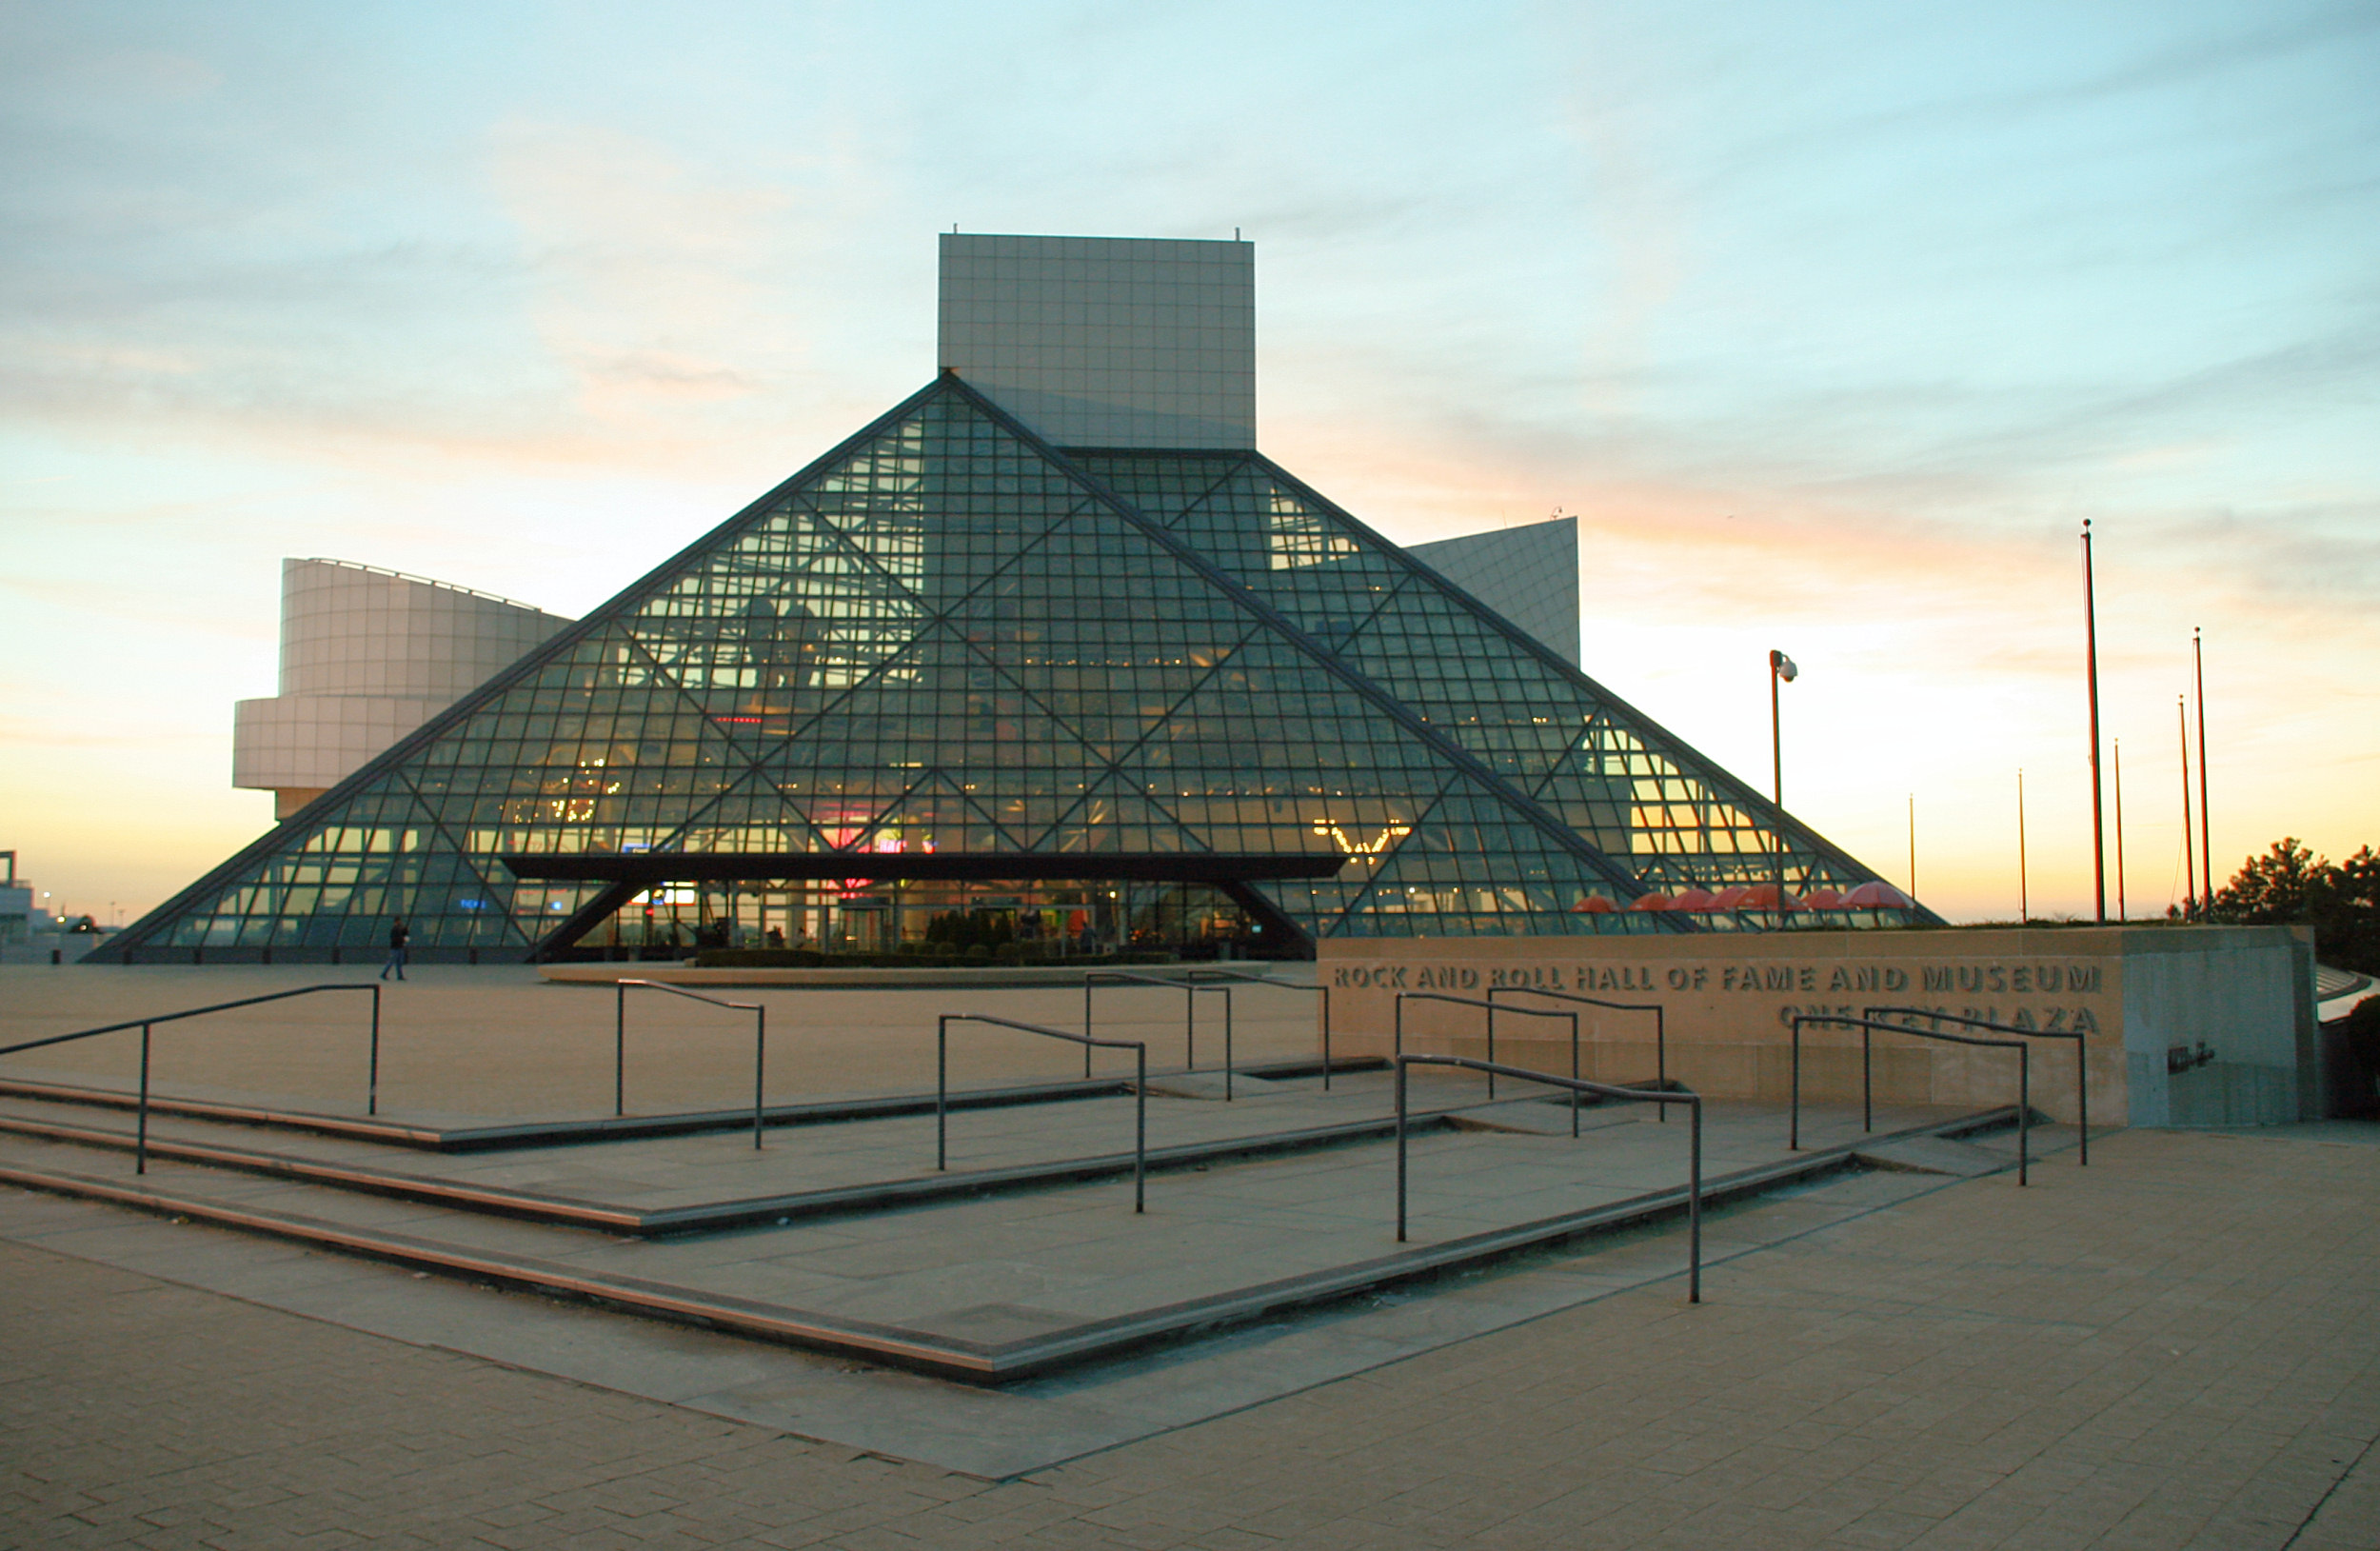 File:Rock-and-roll-hall-of-fame-sunset.jpg - Wikimedia Commons